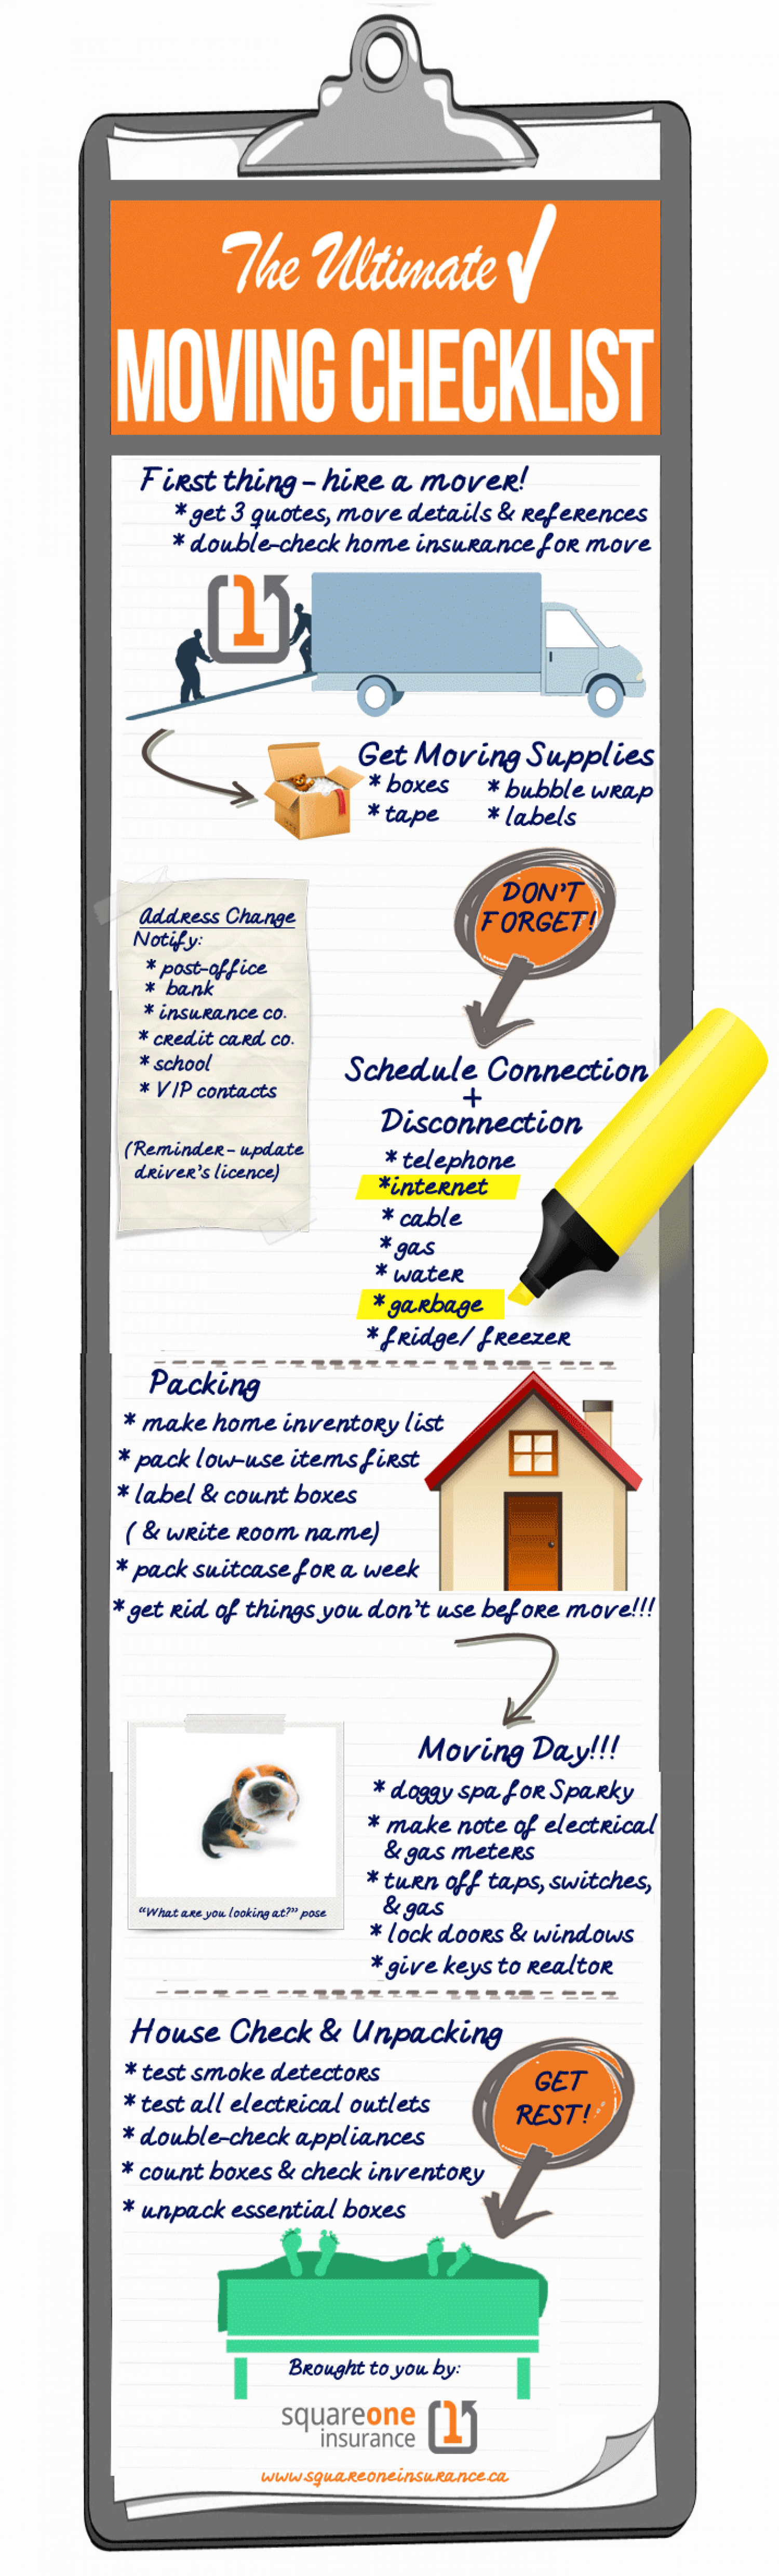 The Ultimate Moving Checklist Infographic